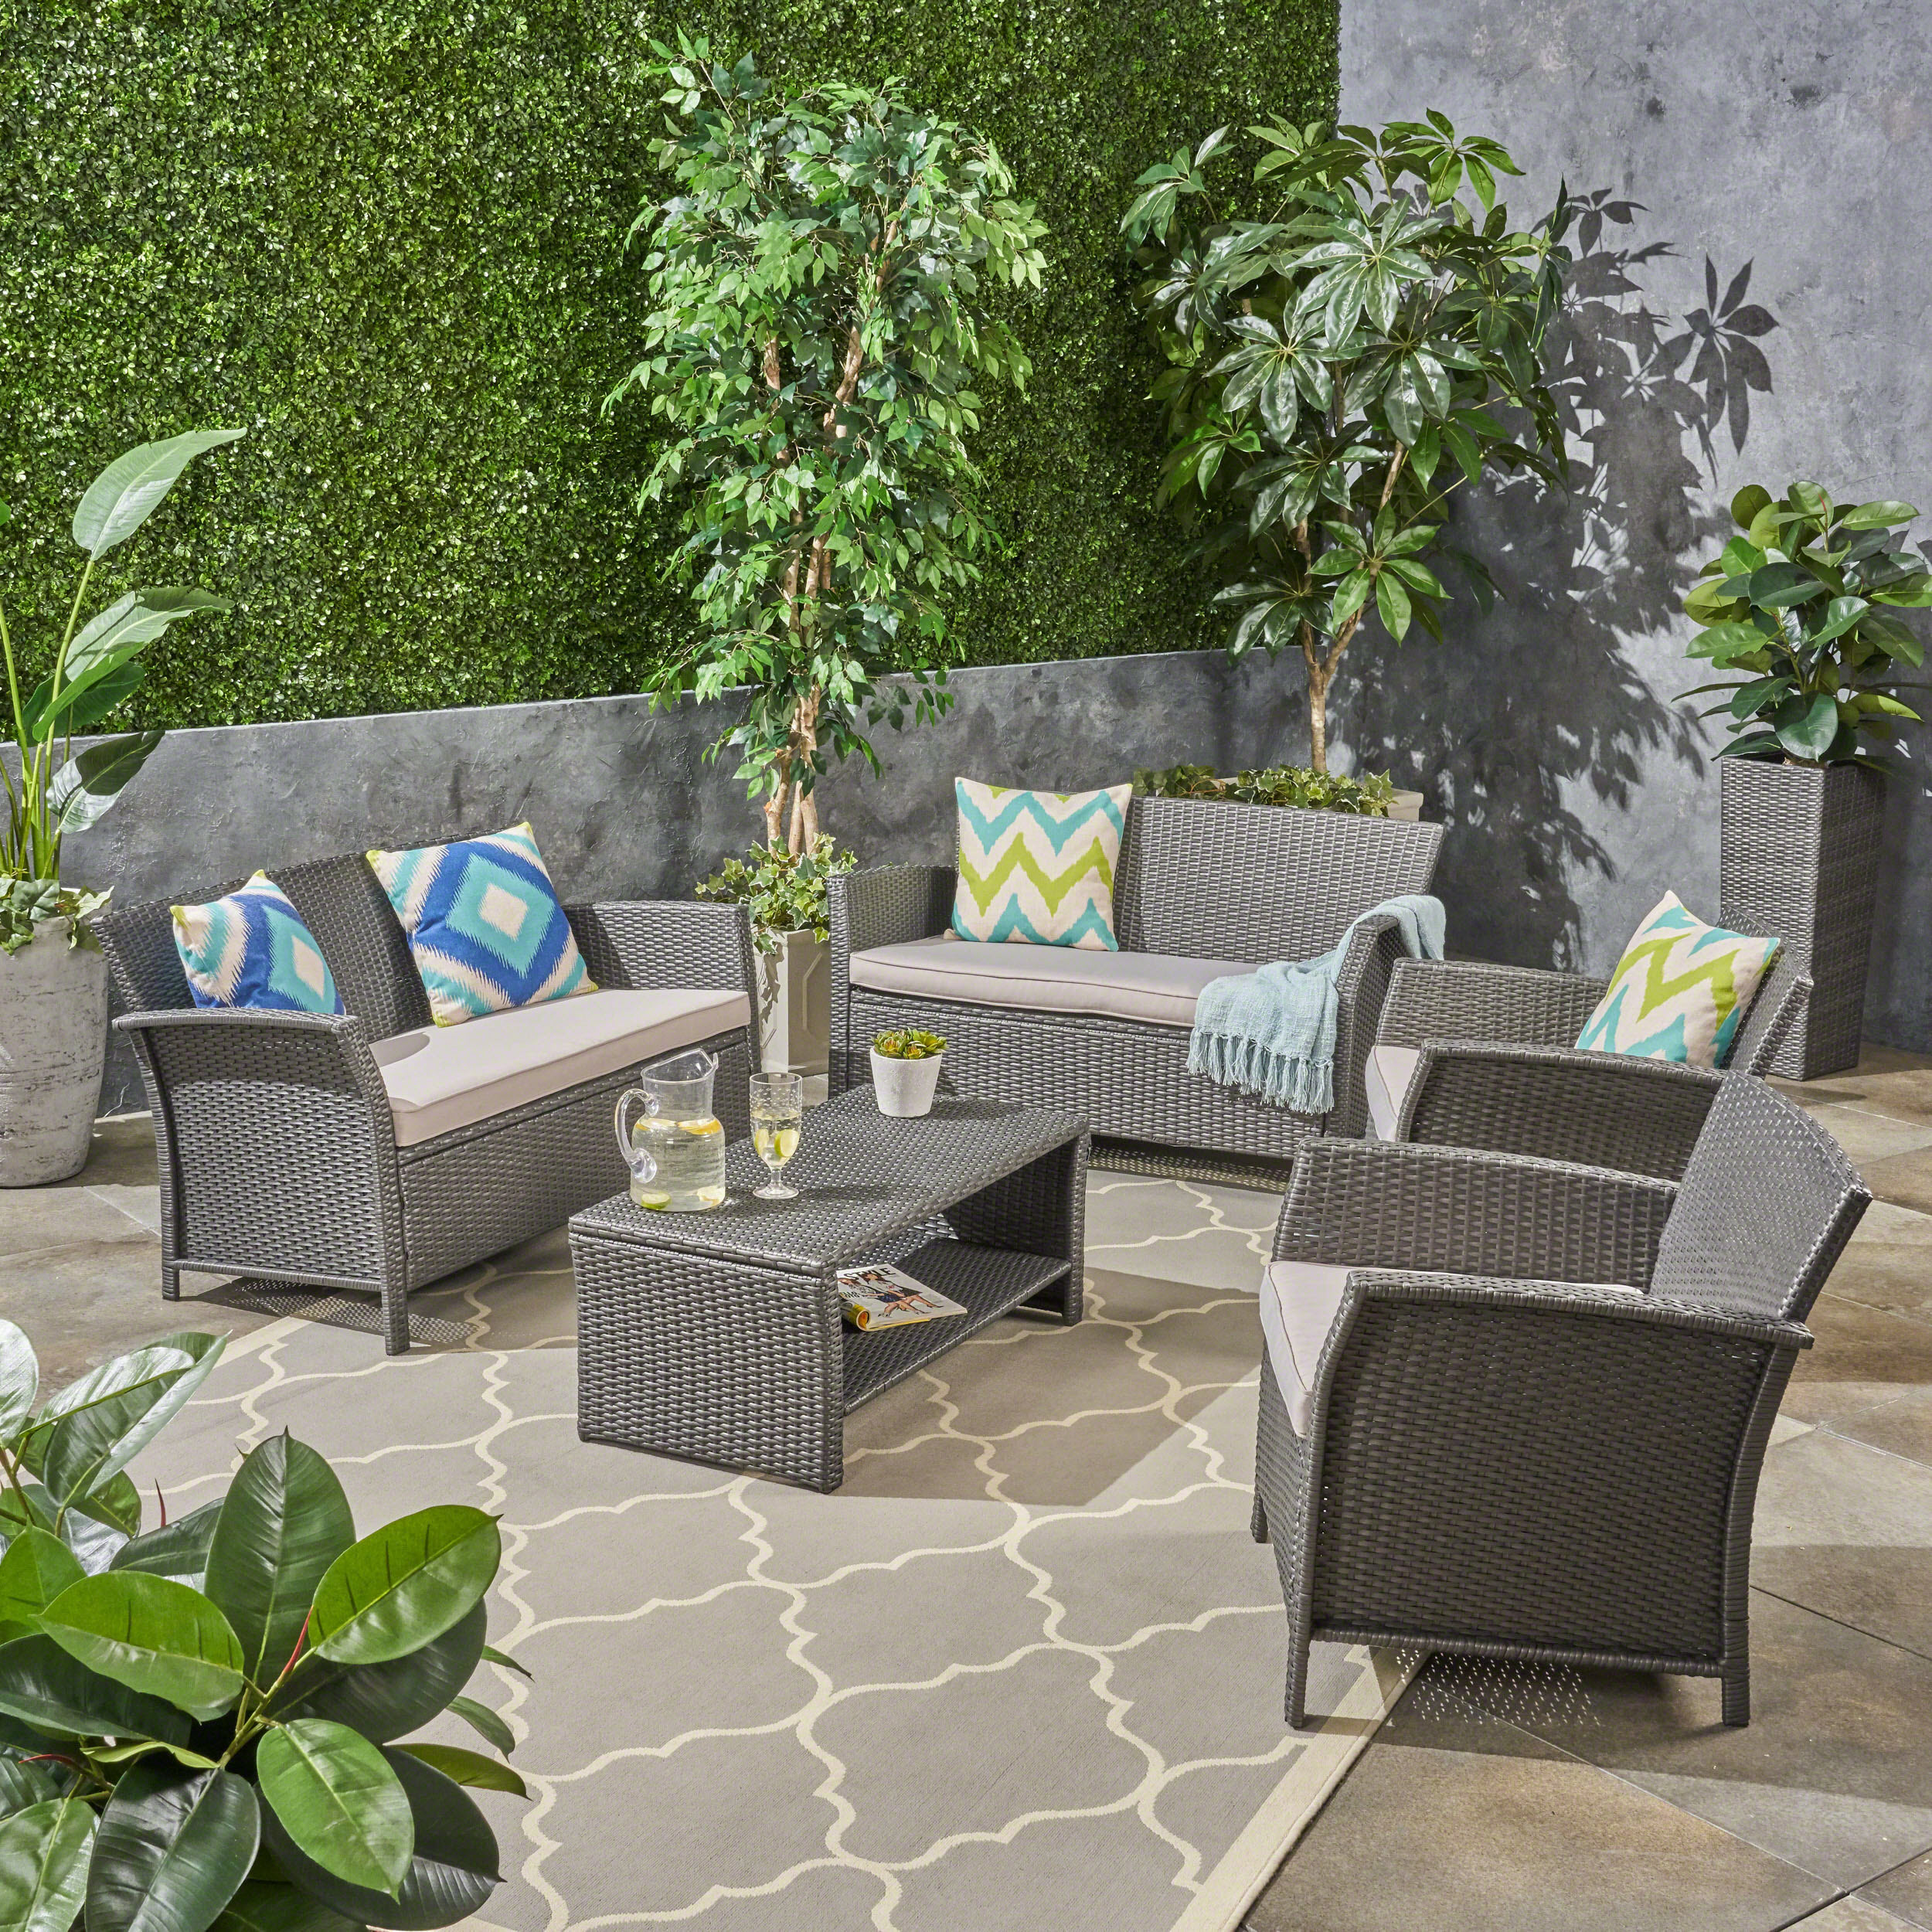 Anton Outdoor 6 Seater Wicker Chat Set with Cushions, Gray, Silver